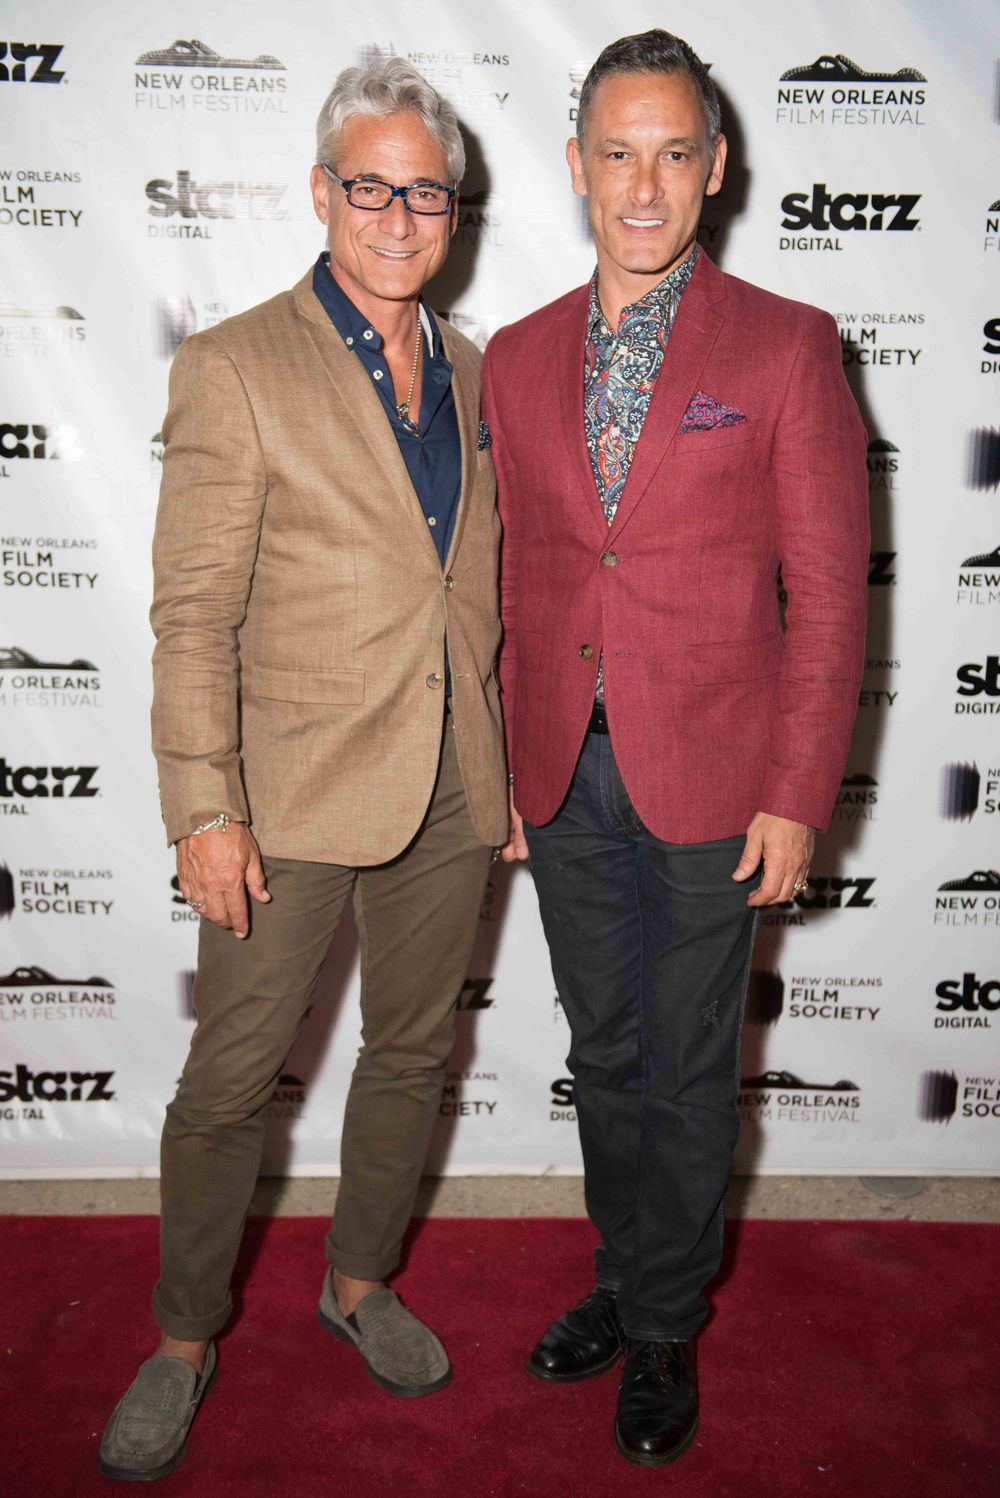 NEW ORLEANS, LA - October 24, 2014: (L-R) Greg Louganis and Husband Johnny Chaillot at the Premiere of Back on Board at the Prytania Theater during the 2014 New Orleans Film Fest in New Orleans, Louisiana (photo by Adrienne Battistella, 2014)